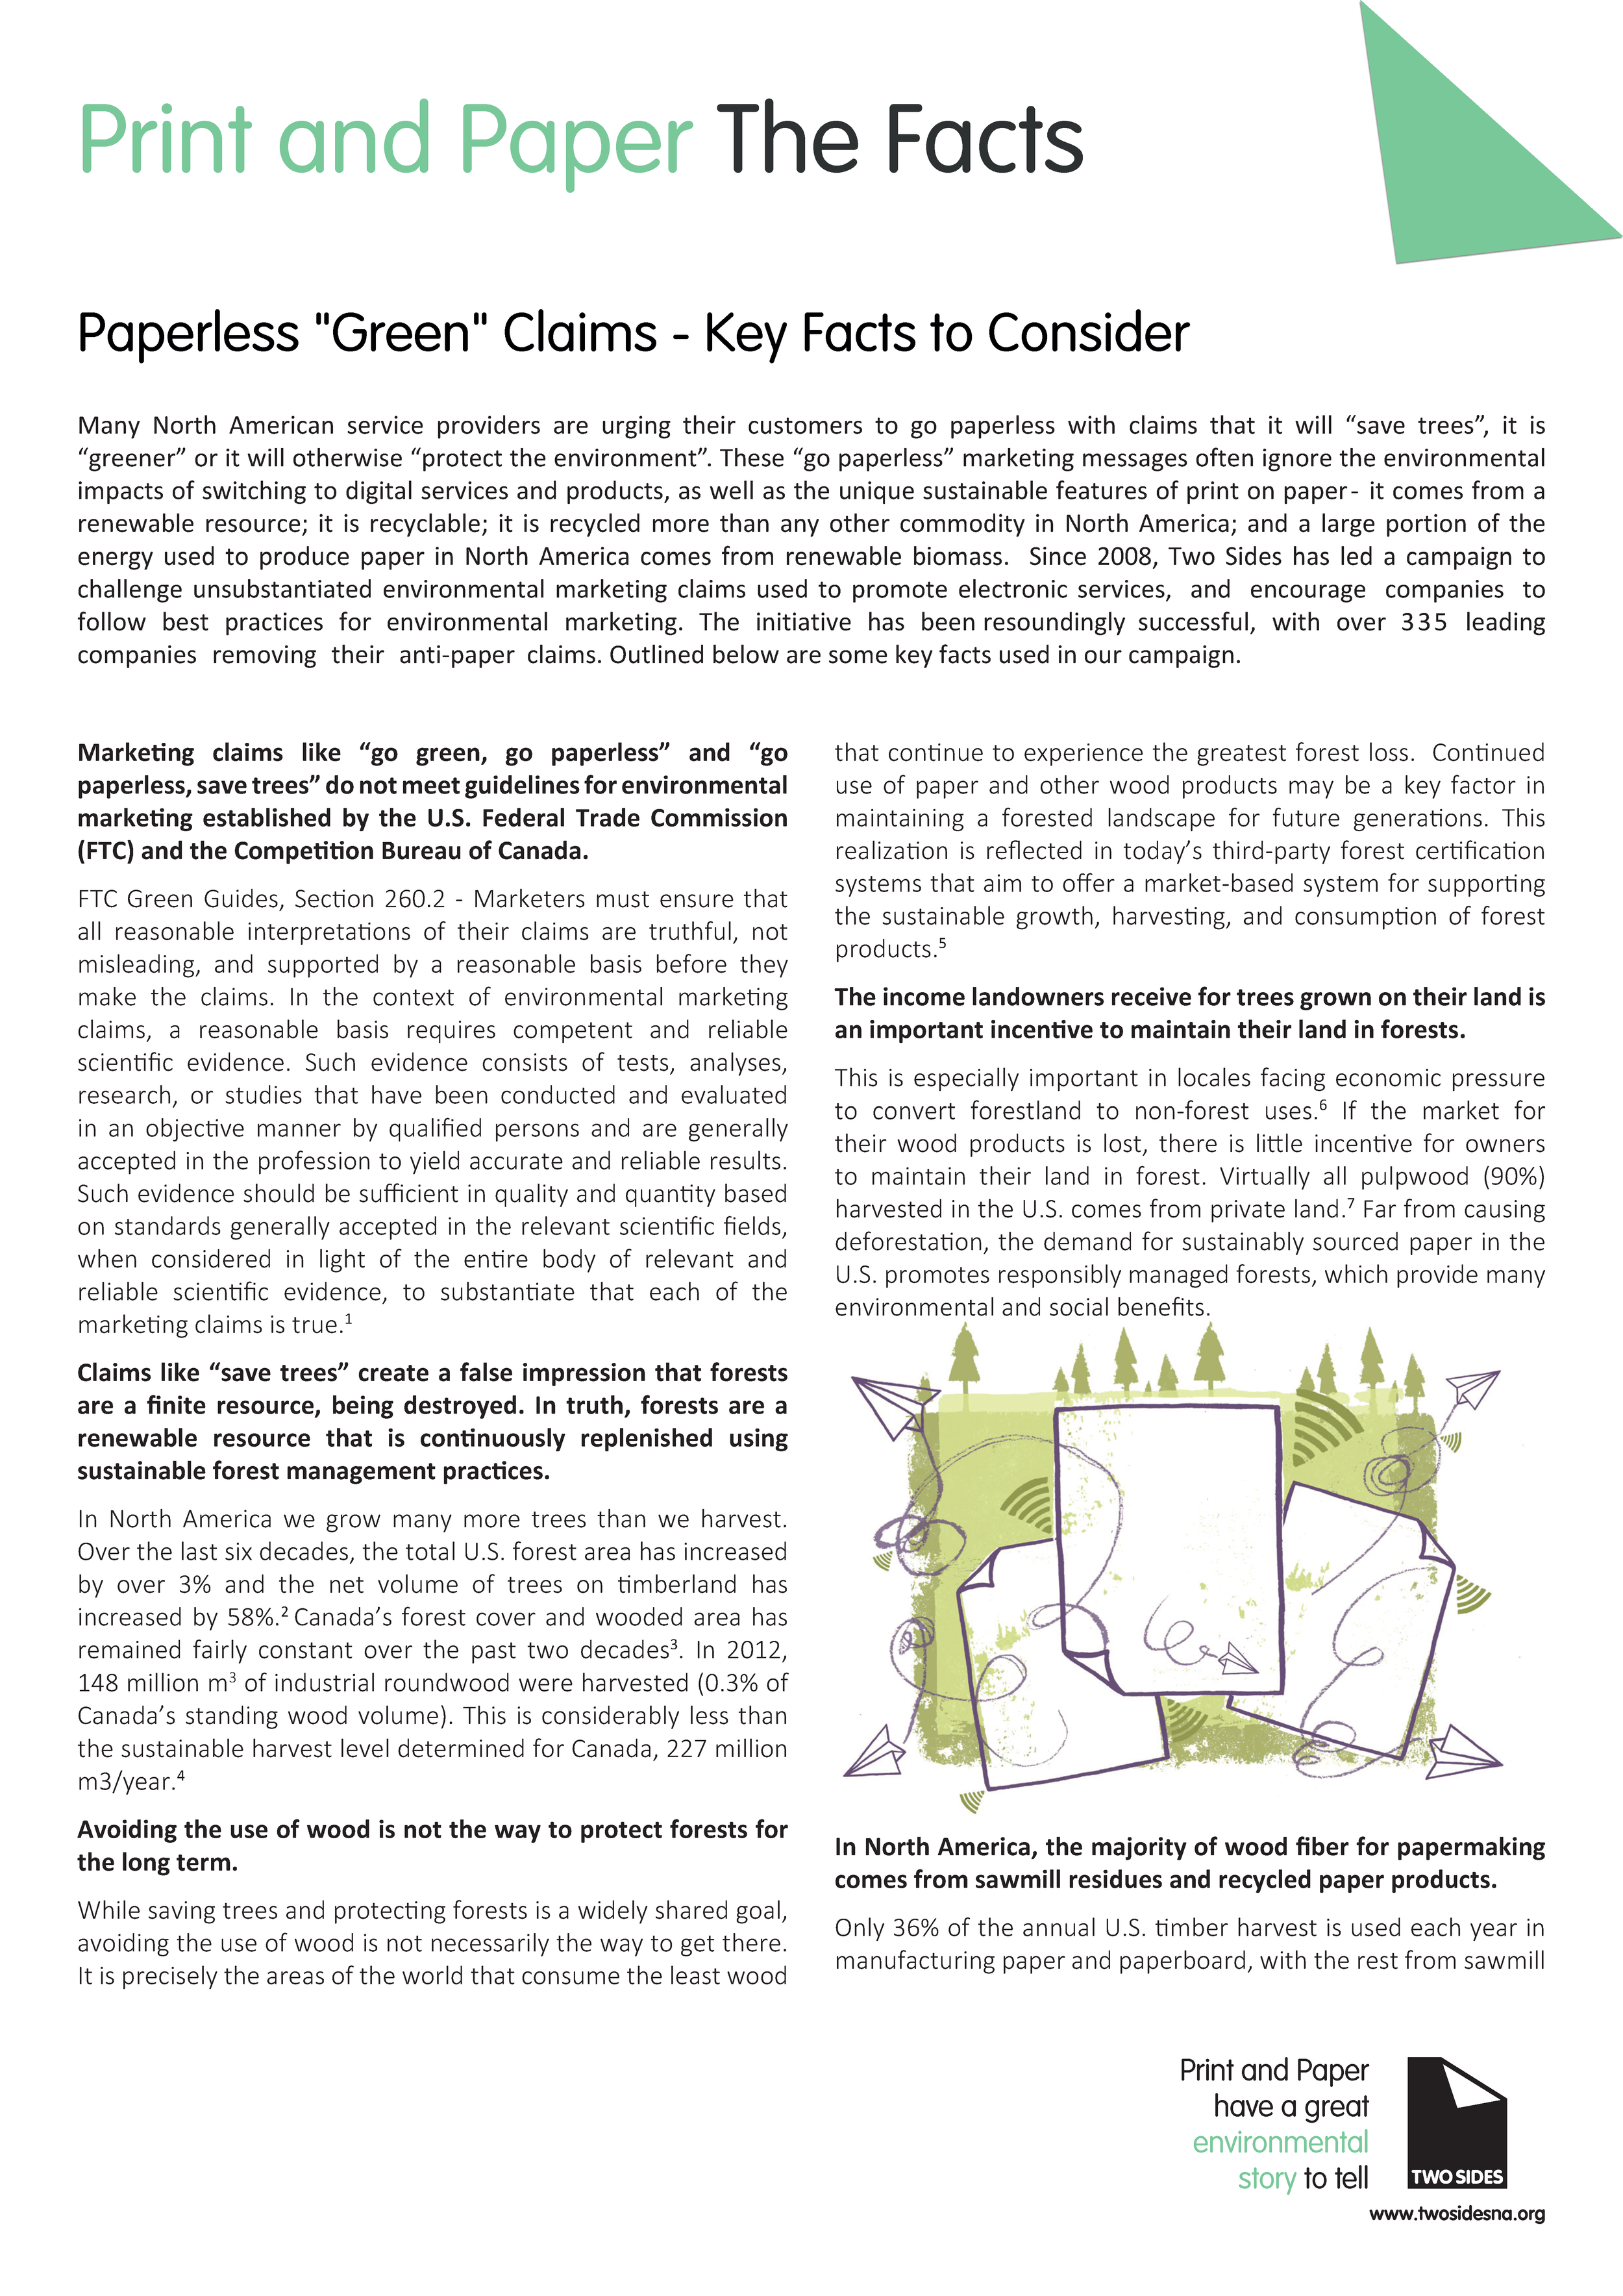 Paperless green claims - key facts_Page_1.png